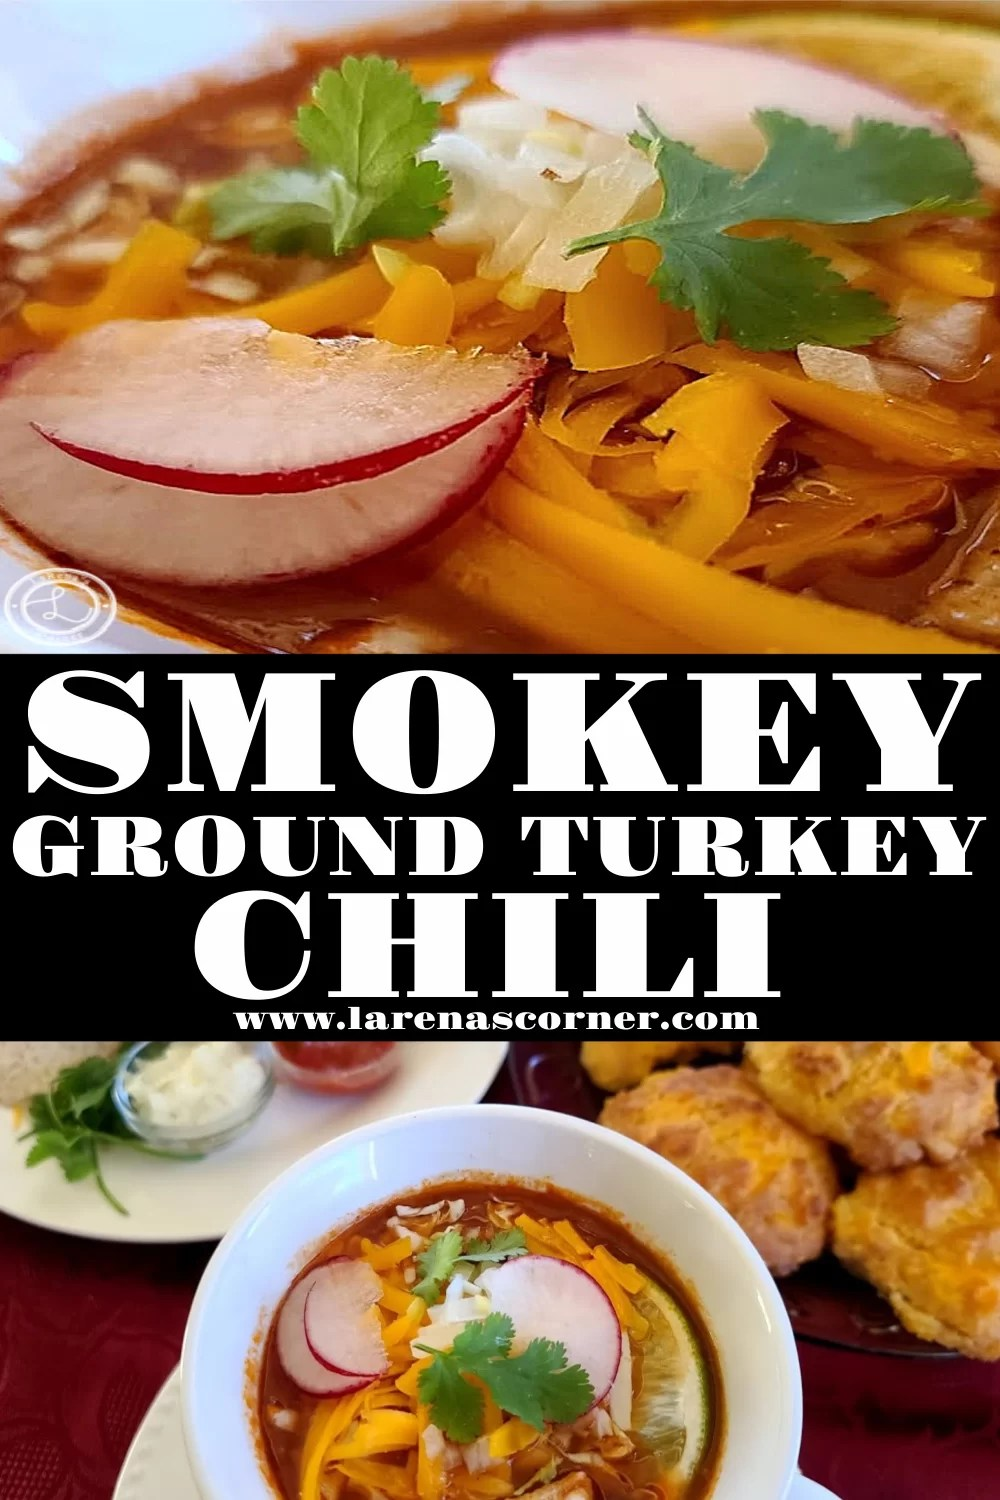 Two Pictures of the Smokey Ground Turkey Chili